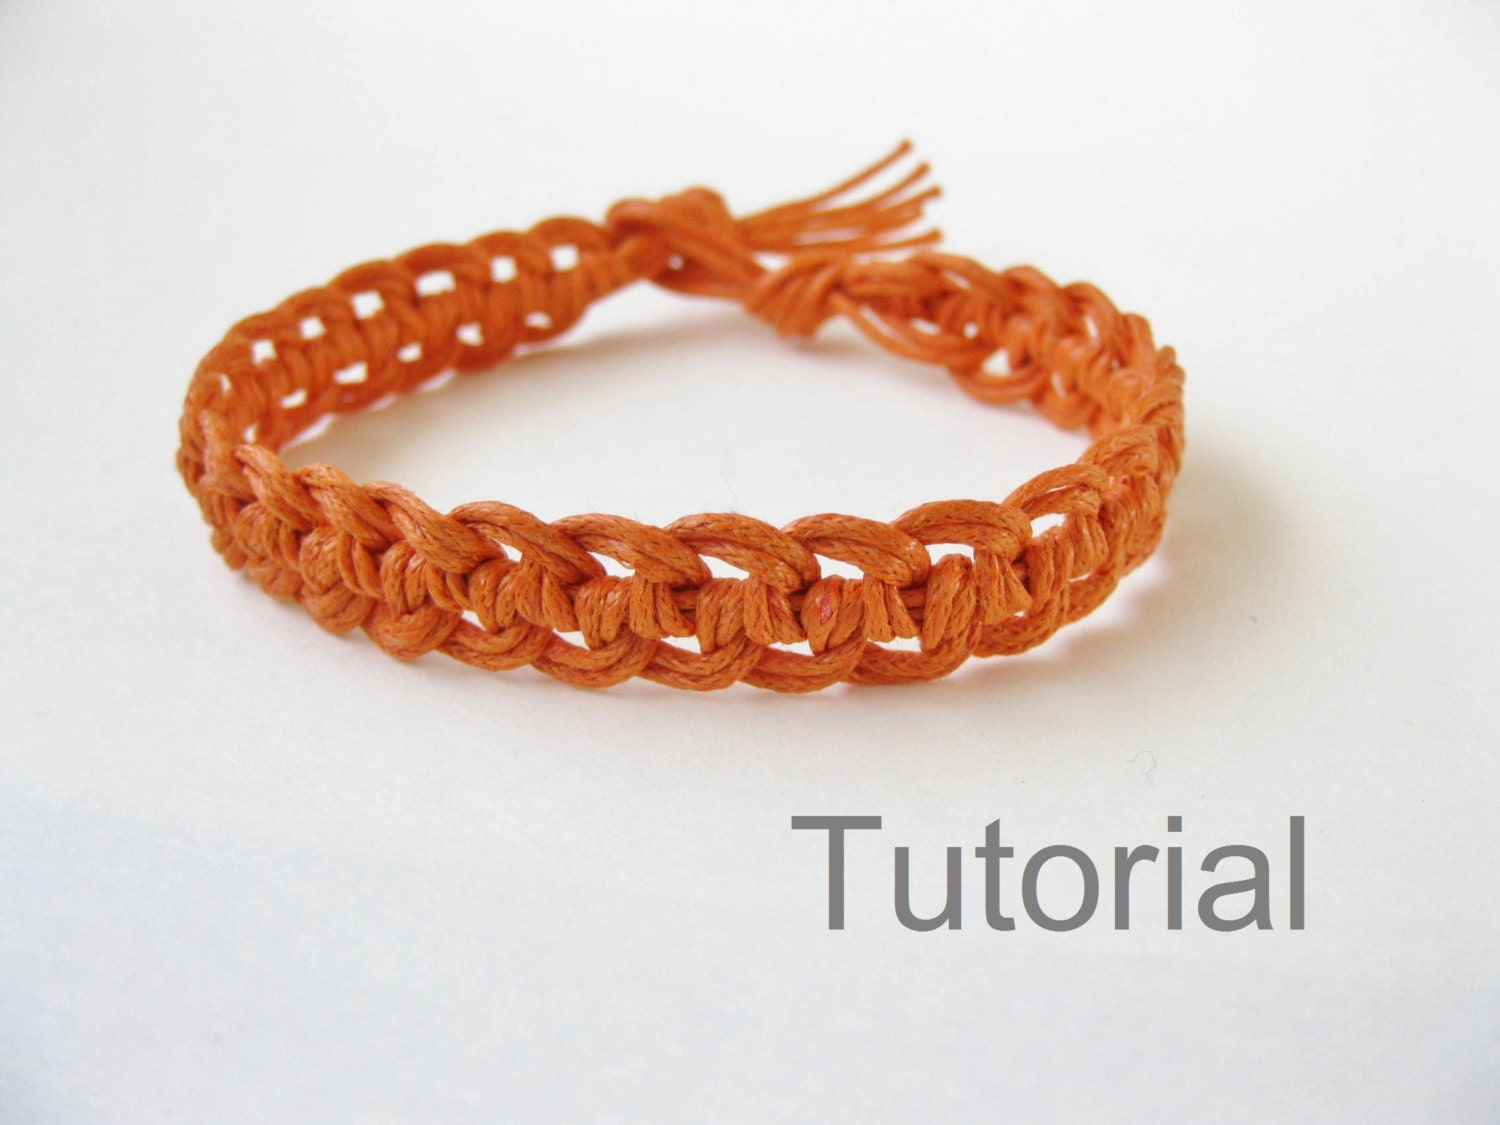 Quick macrame bracelet photo tutorial pattern pdf by Knotonlyknots